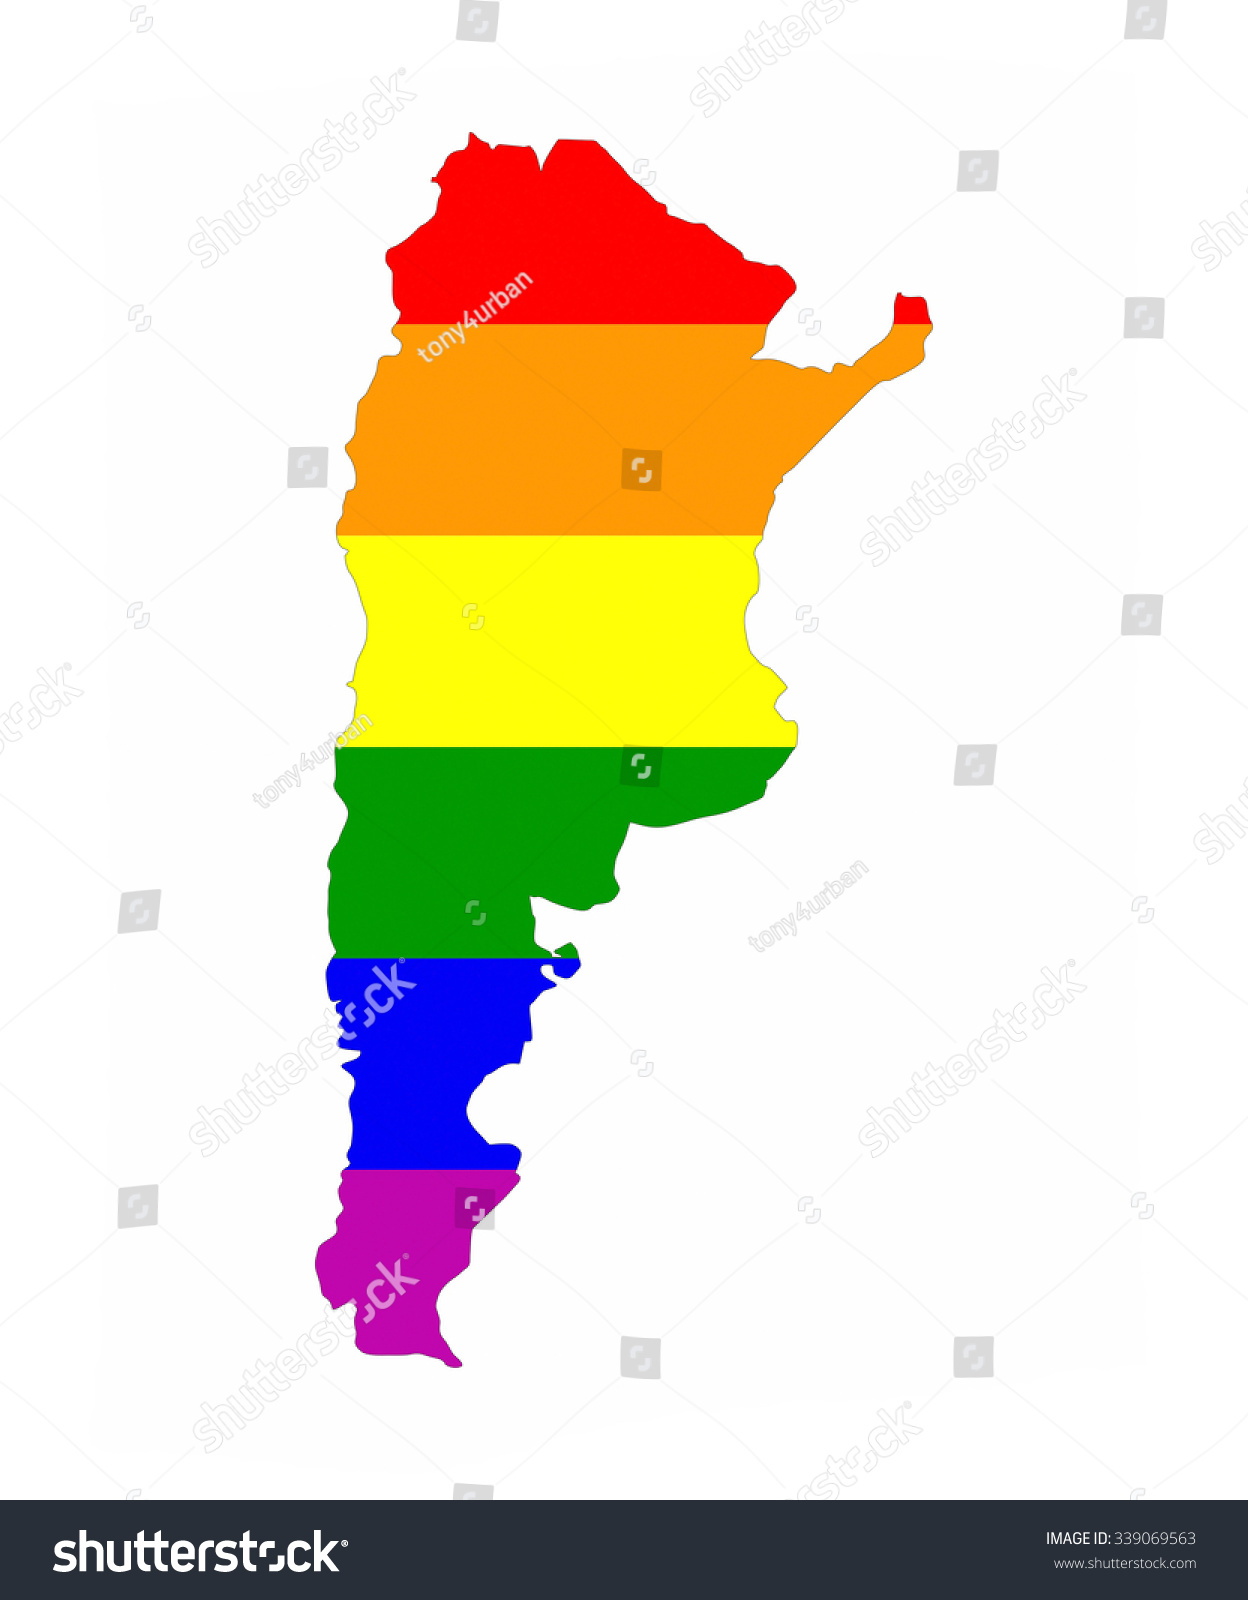 Argentina Country Gay Pride Flag Map Stock Illustration - Argentina map shape